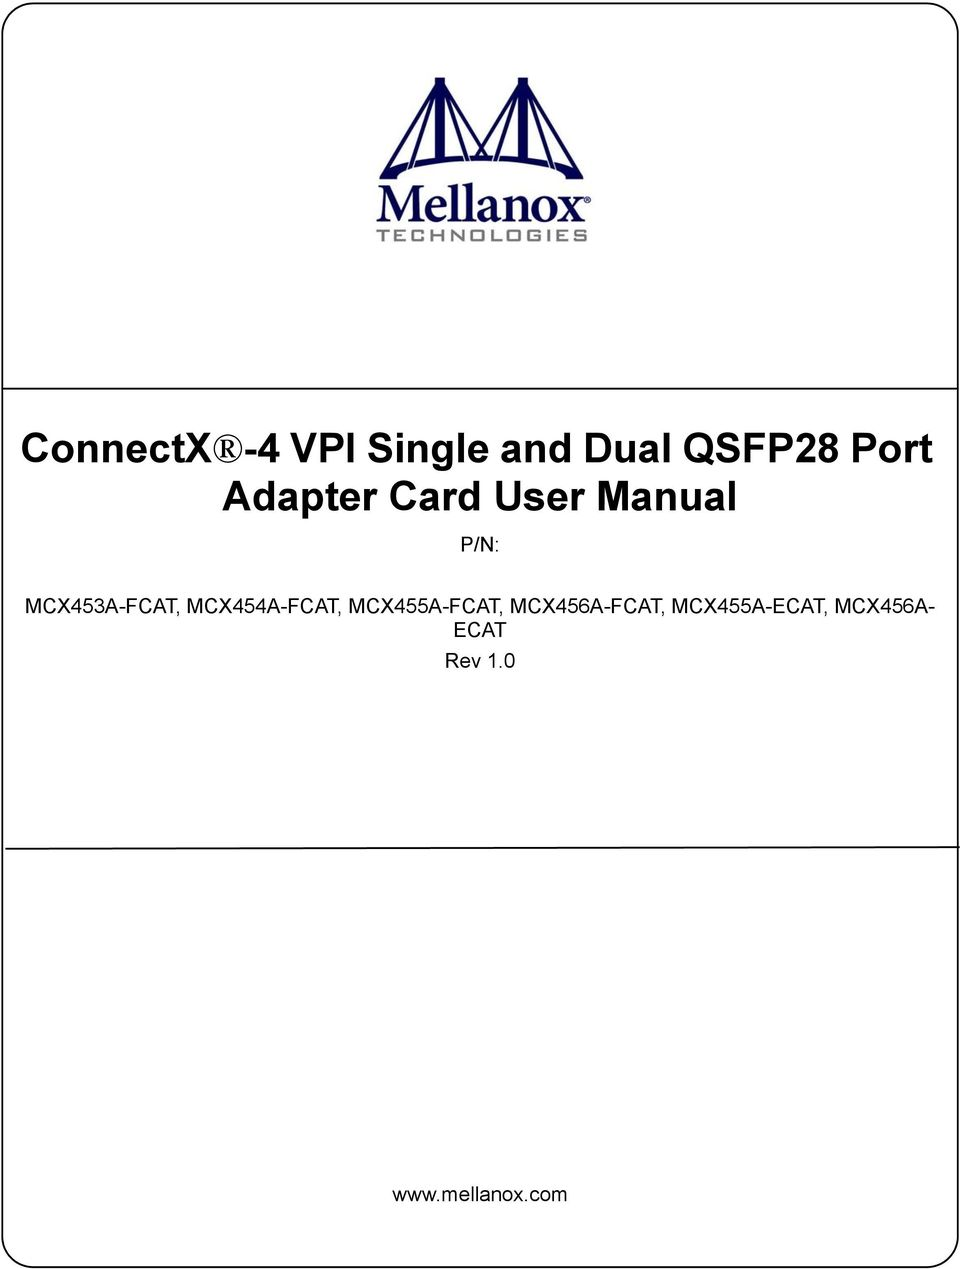 connectx 4 vpi single and dual qsfp28 port adapter card user manual rh docplayer net Passport Agent Reference Guide 2012 APA Reference Guide